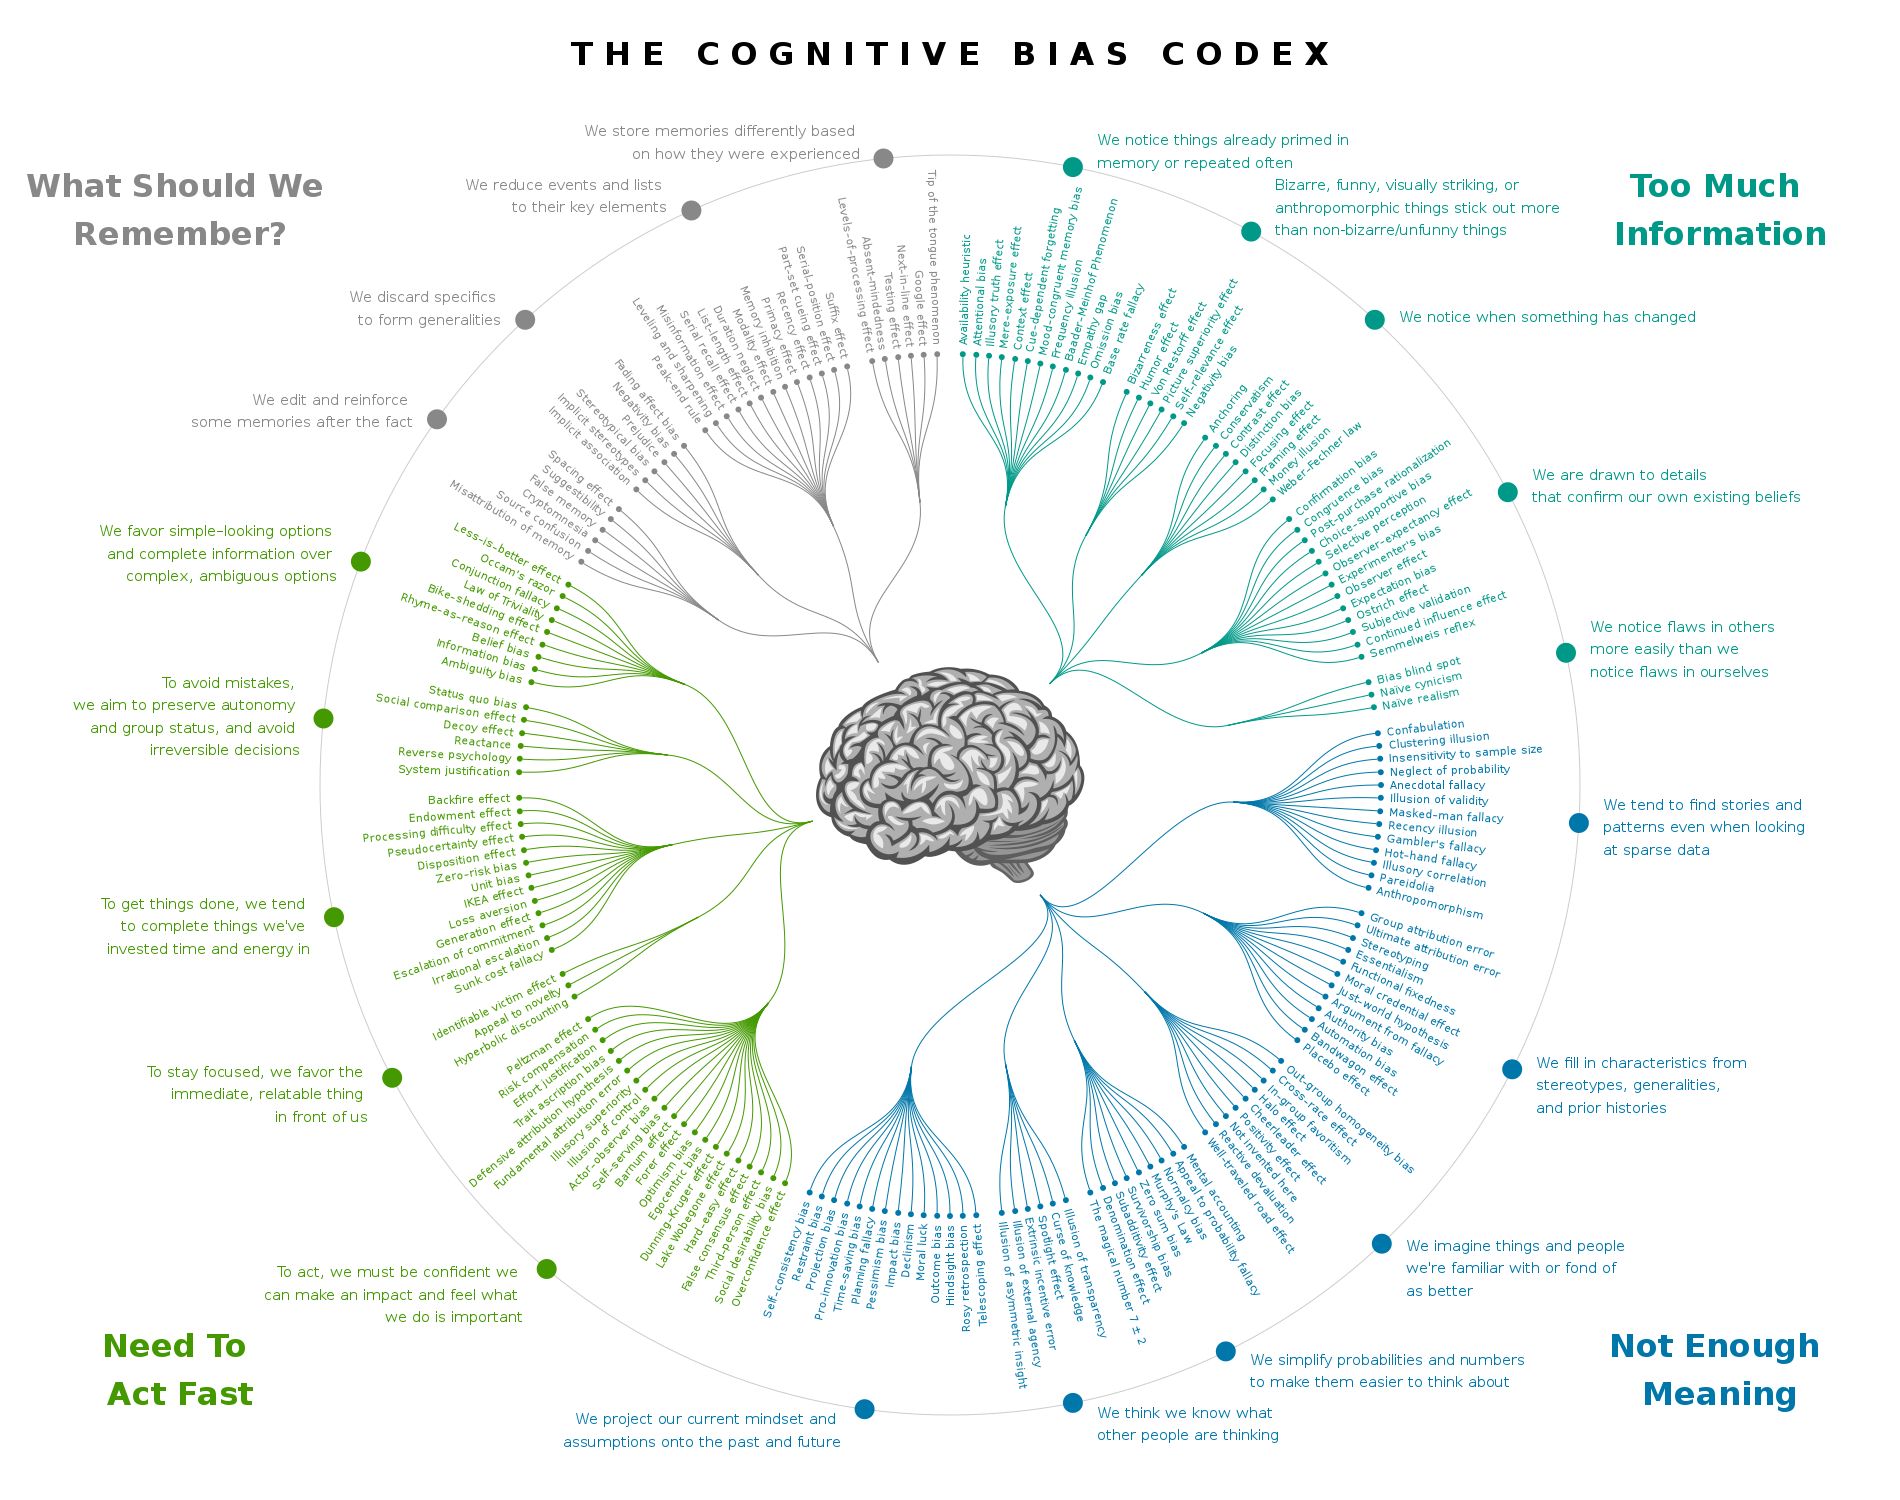 A radial diagram showing a categorised list of cognitive biases.